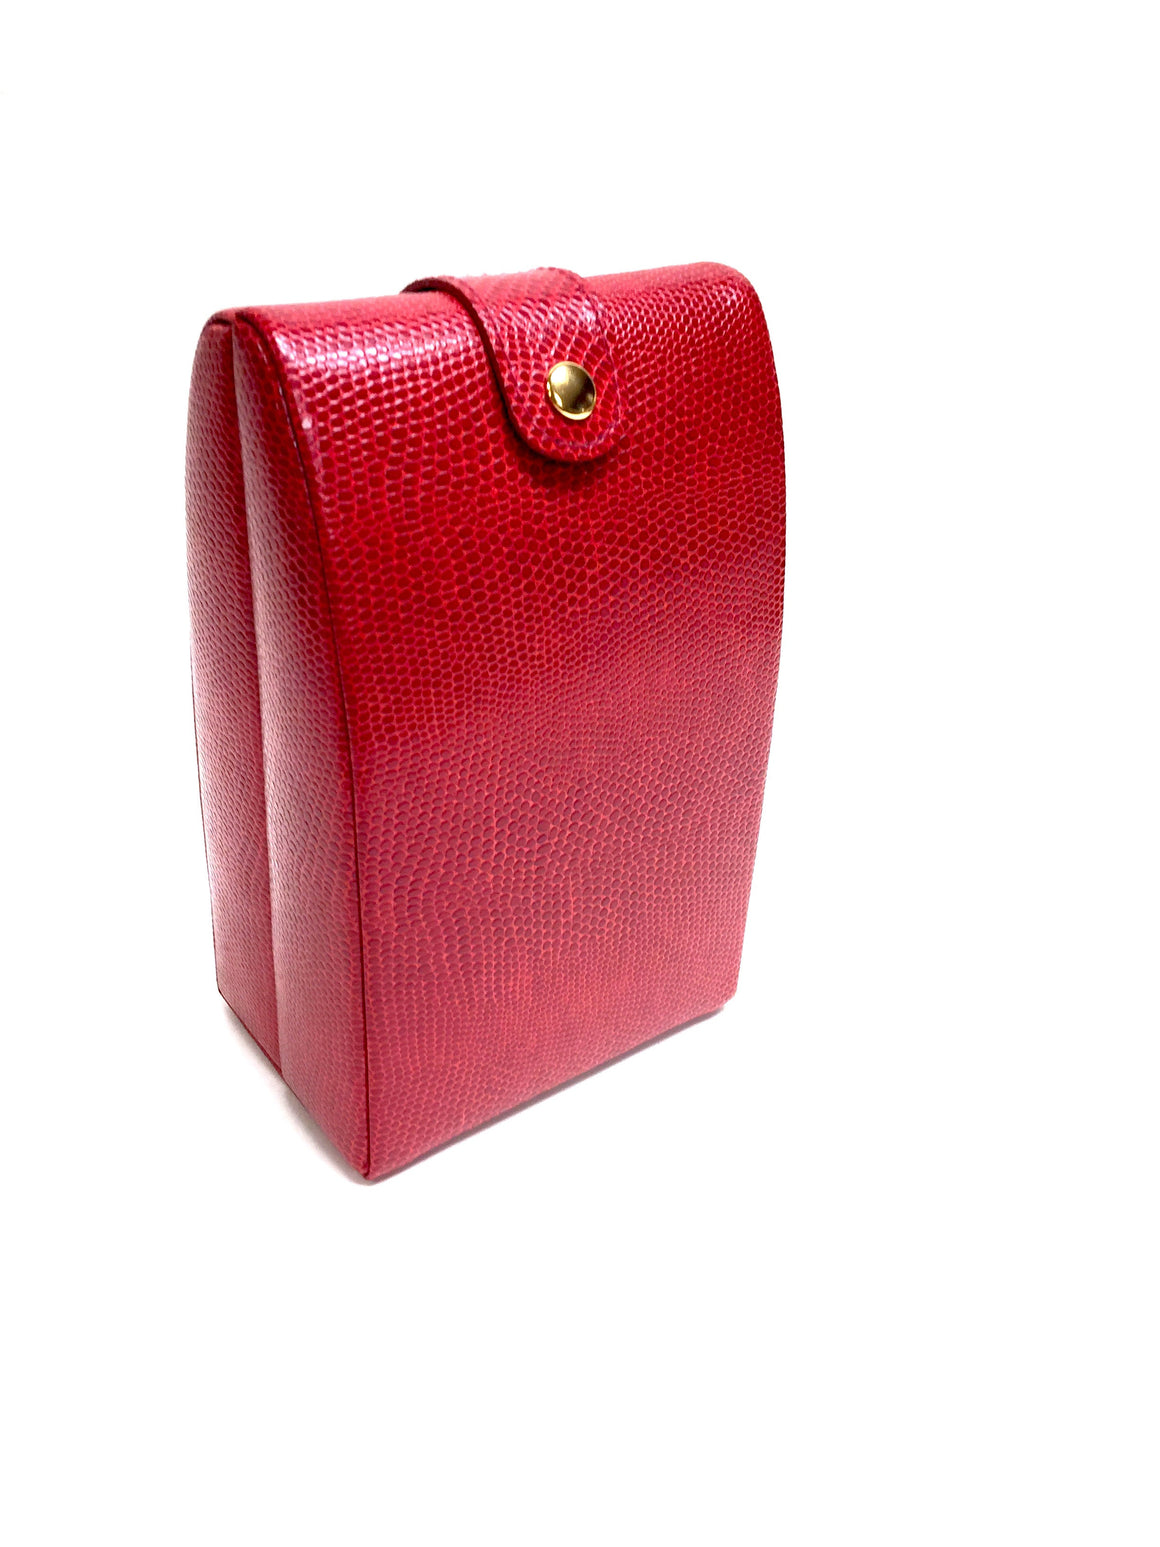 bisbiz.com WOLF DESIGNS Red Lizard-Print Faux Leather Jewelry Travel Case - Bis Luxury Resale